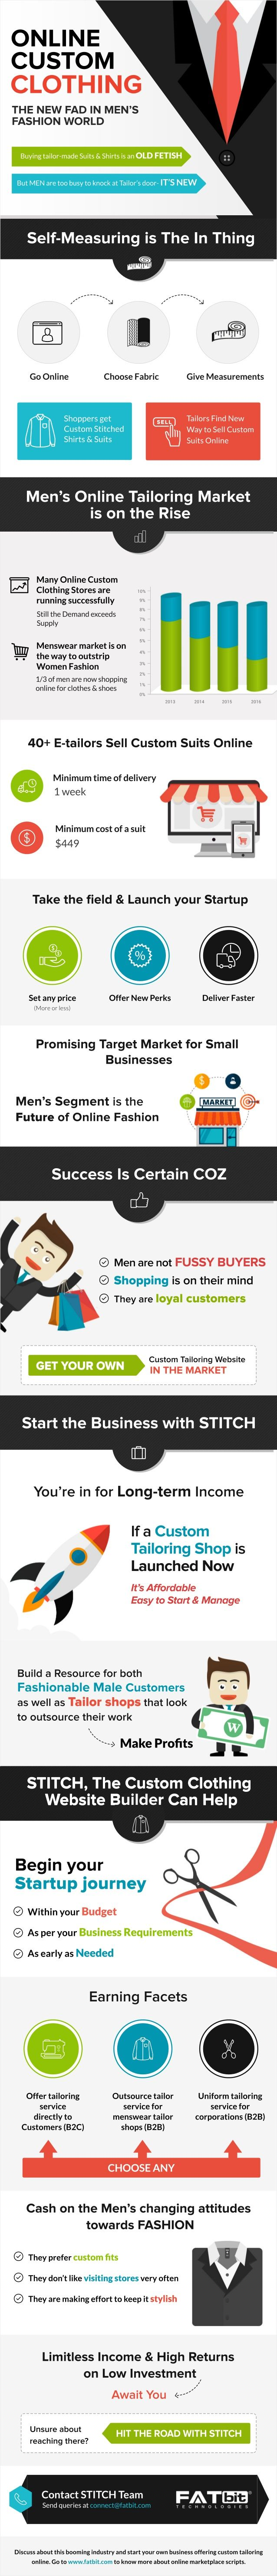 Start Custom Clothing Website Today as Men are Shopping More Online #Infographic